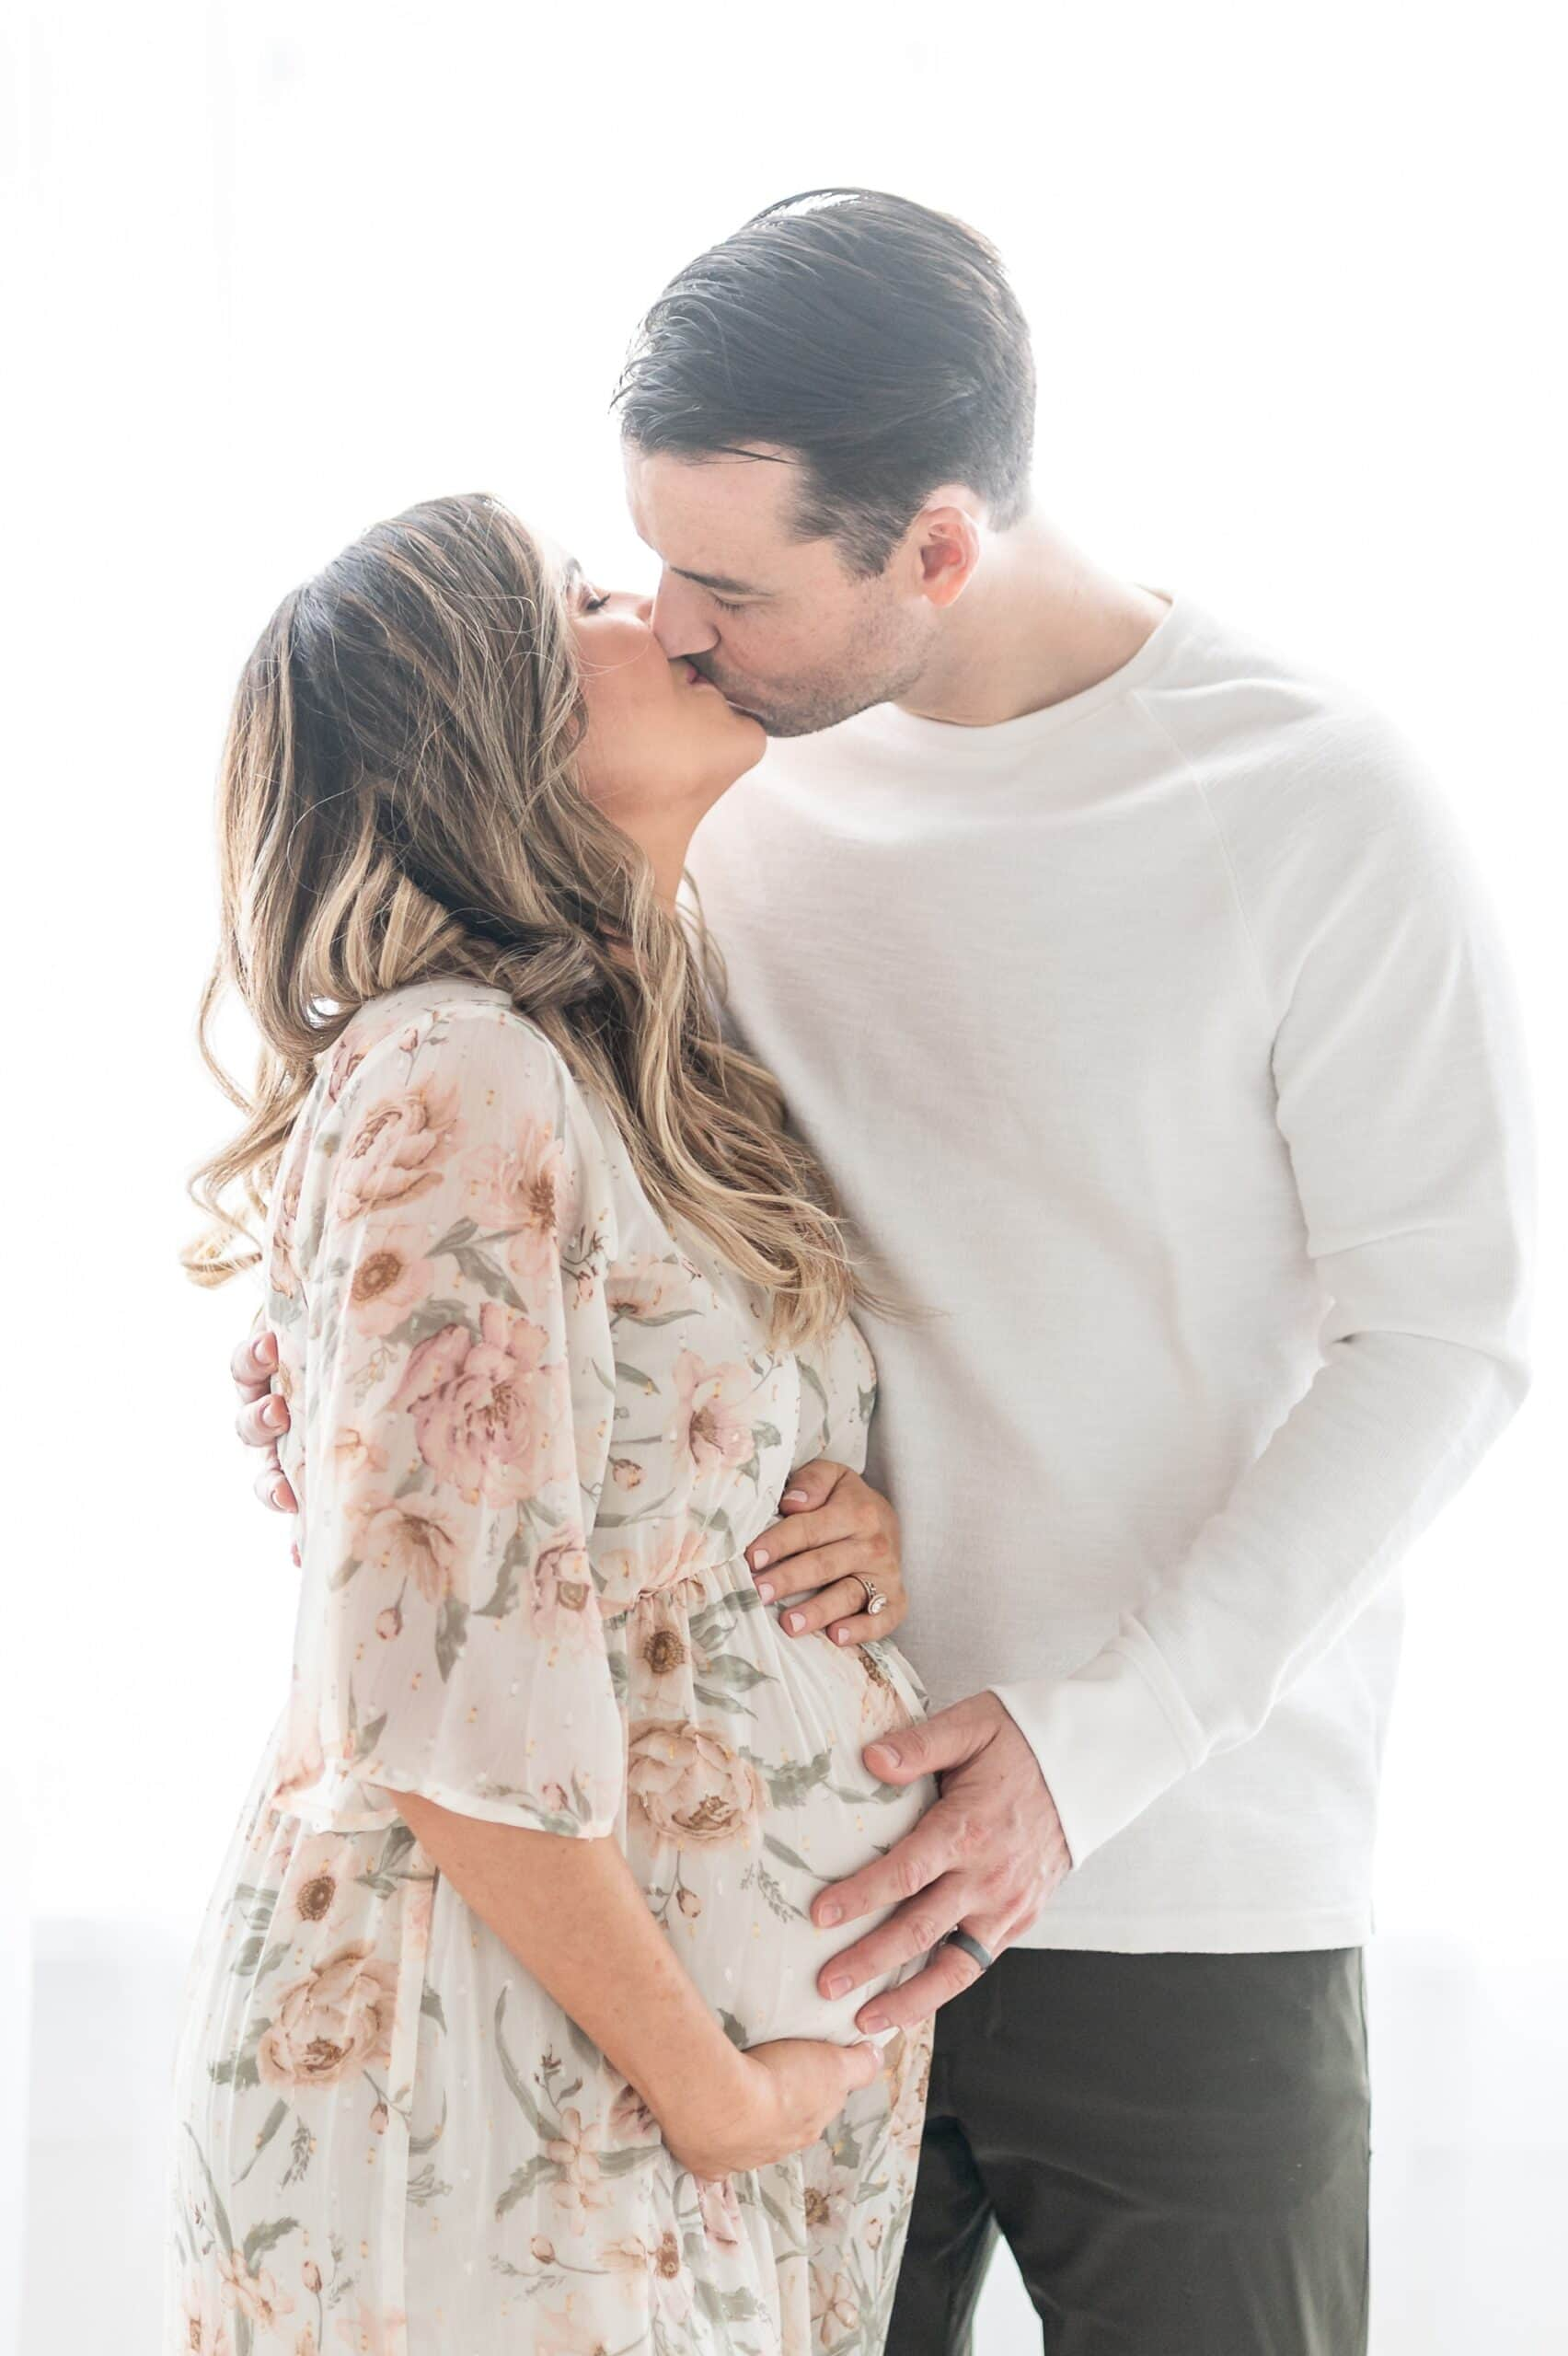 Expecting parents kiss in front of a window during maternity session in studio. Photo by Aimee Hamilton Photography.